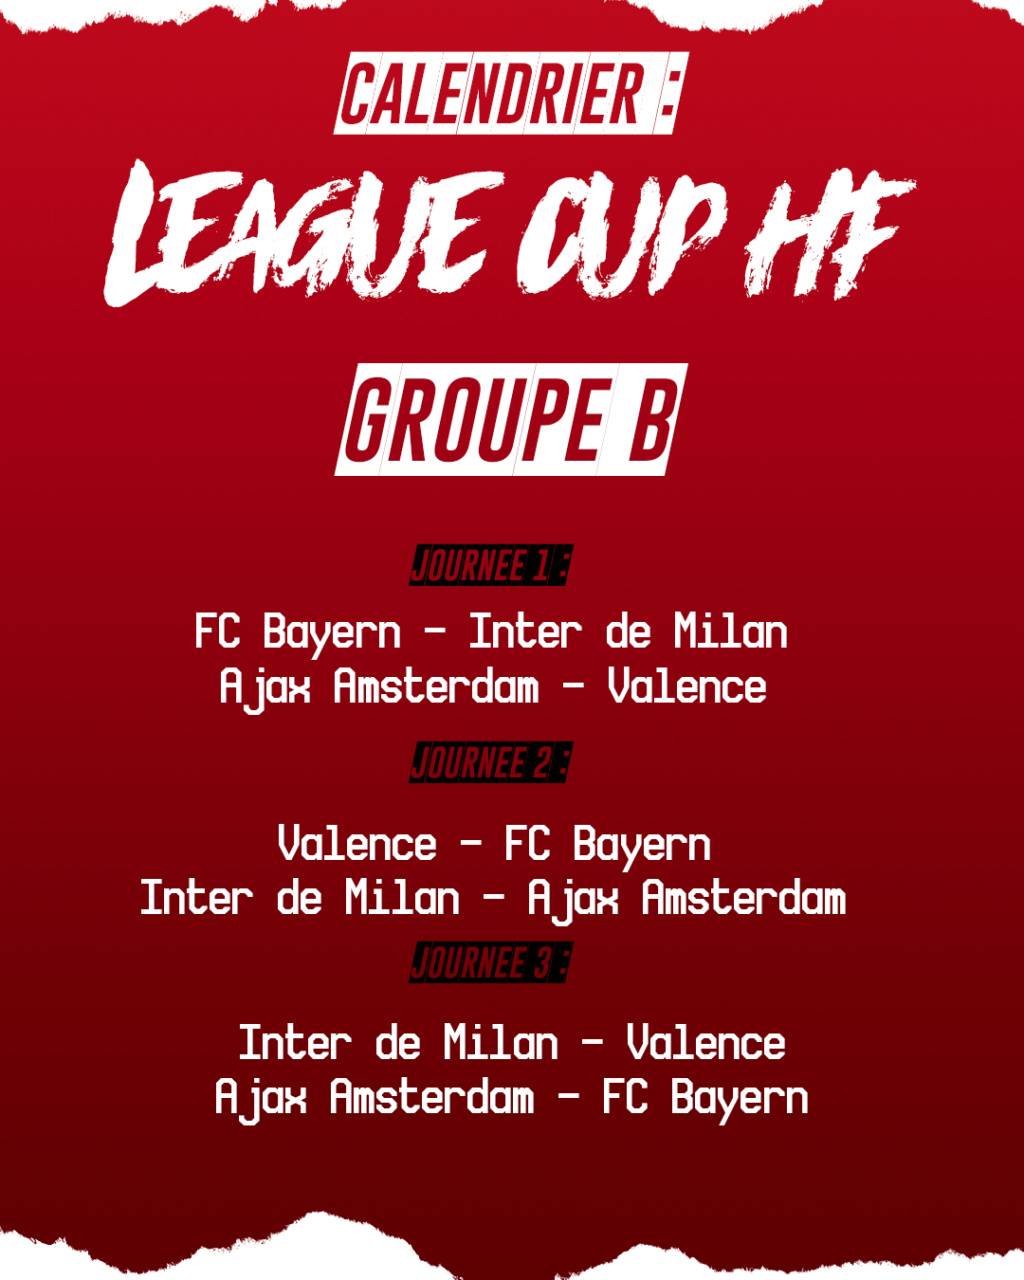 Calendrier League Cup HF : Groupe B Groupe11